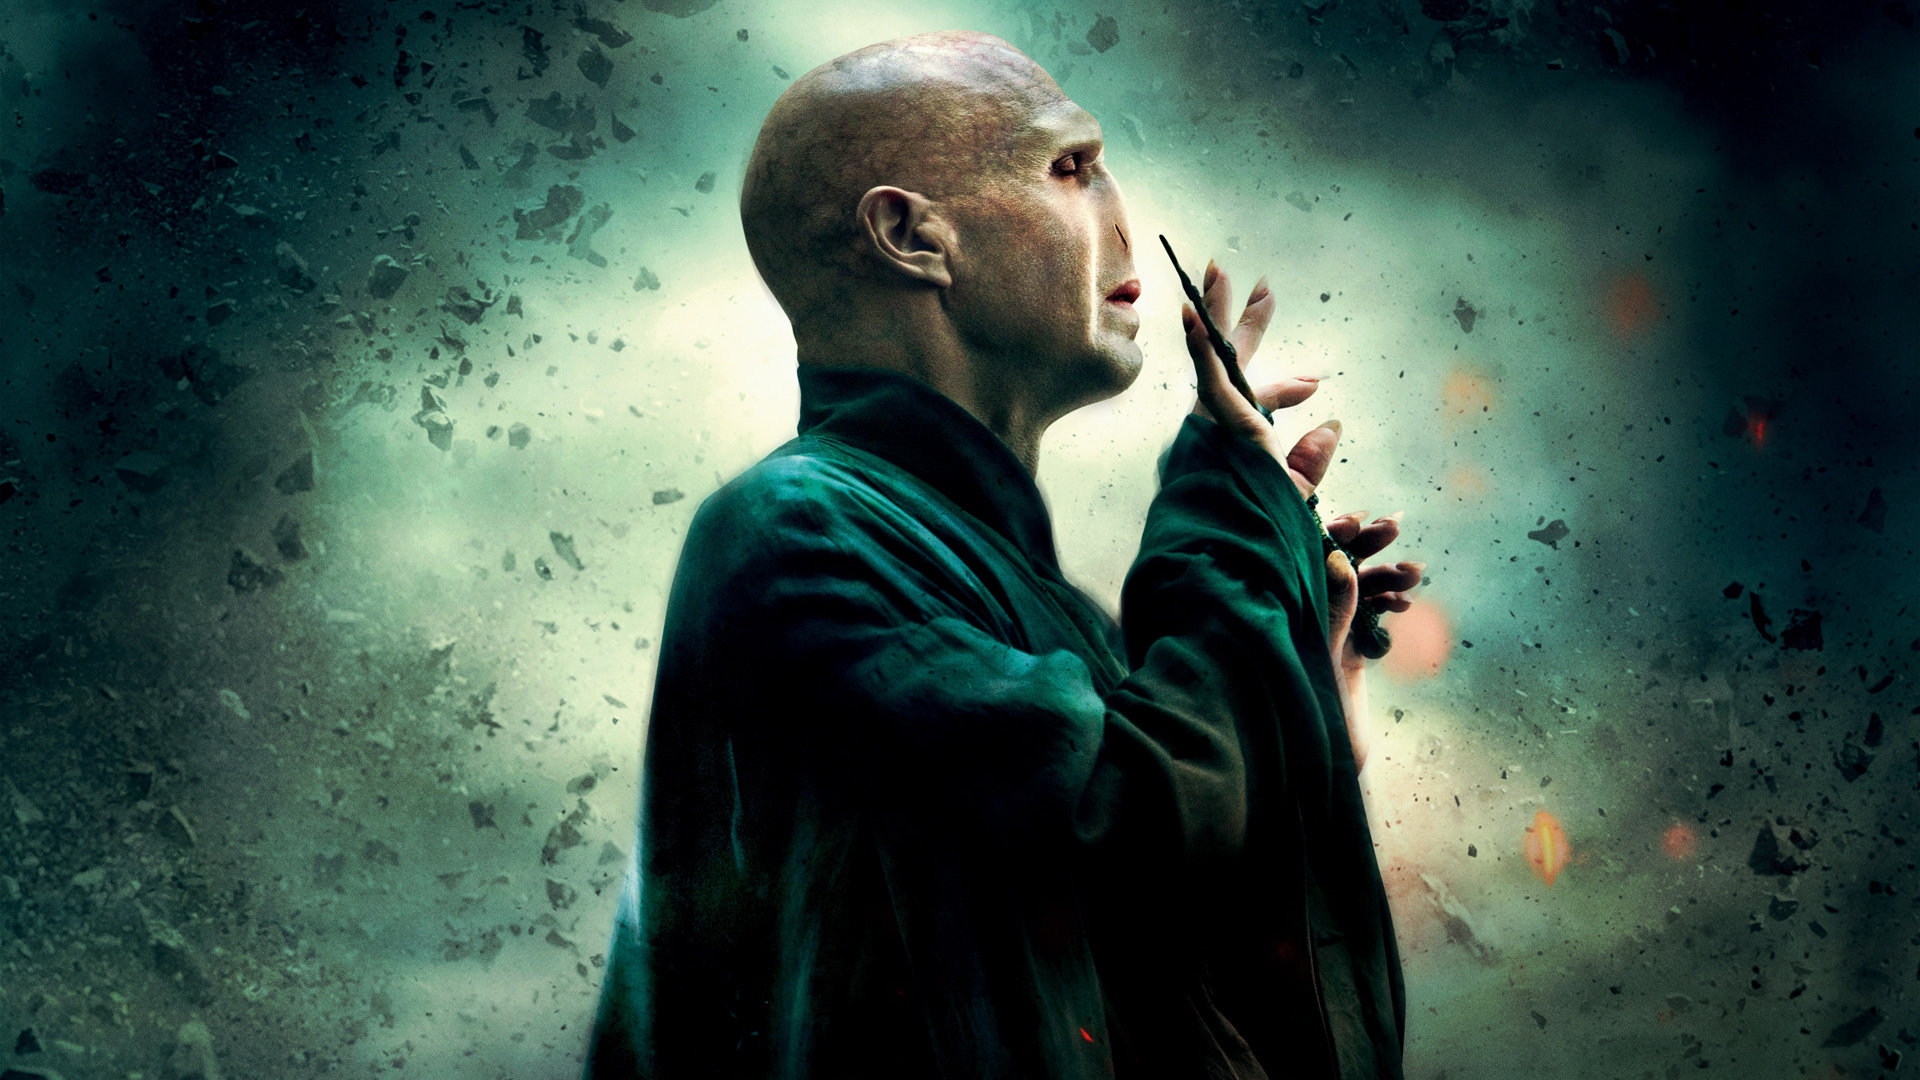 Best Harry Potter And The Deathly Hallows Part 2 Wallpaper Id